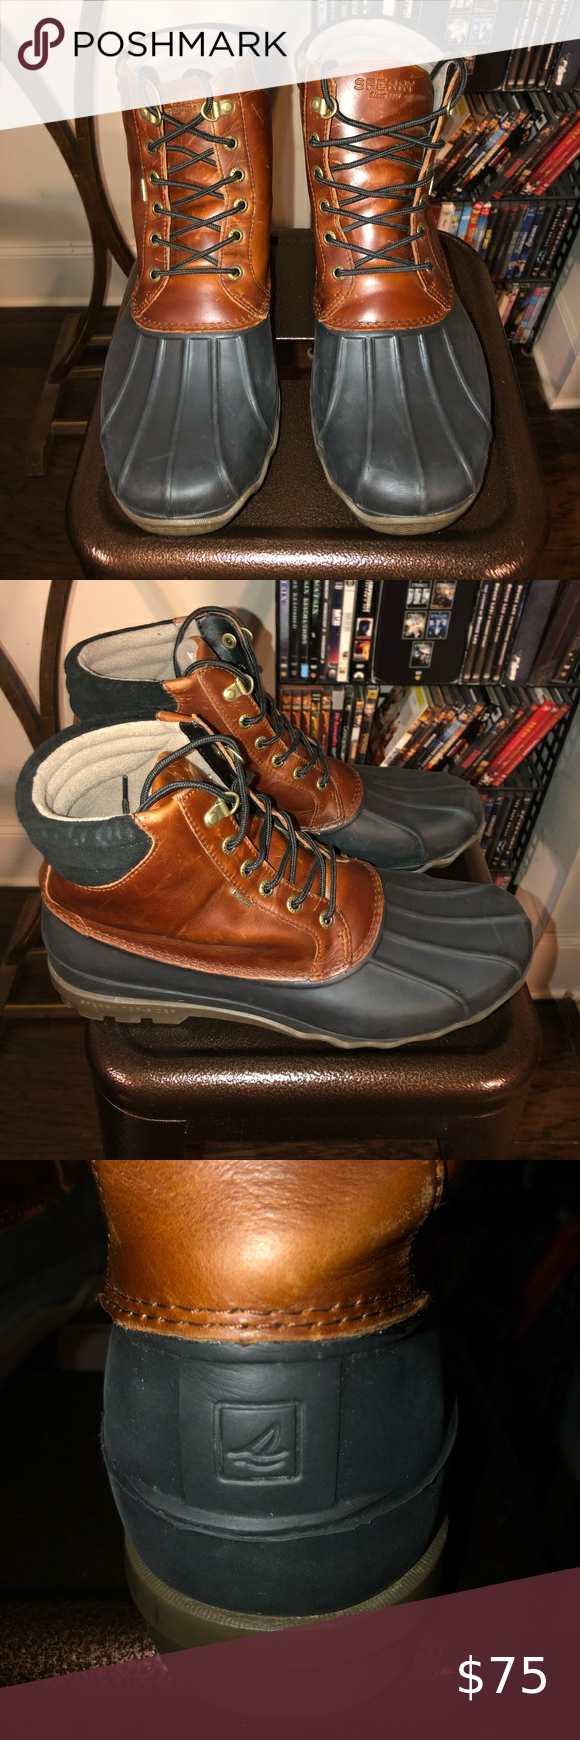 Sherry Topsider Boots Boots Lace Boots Duck Boots [ 1740 x 580 Pixel ]